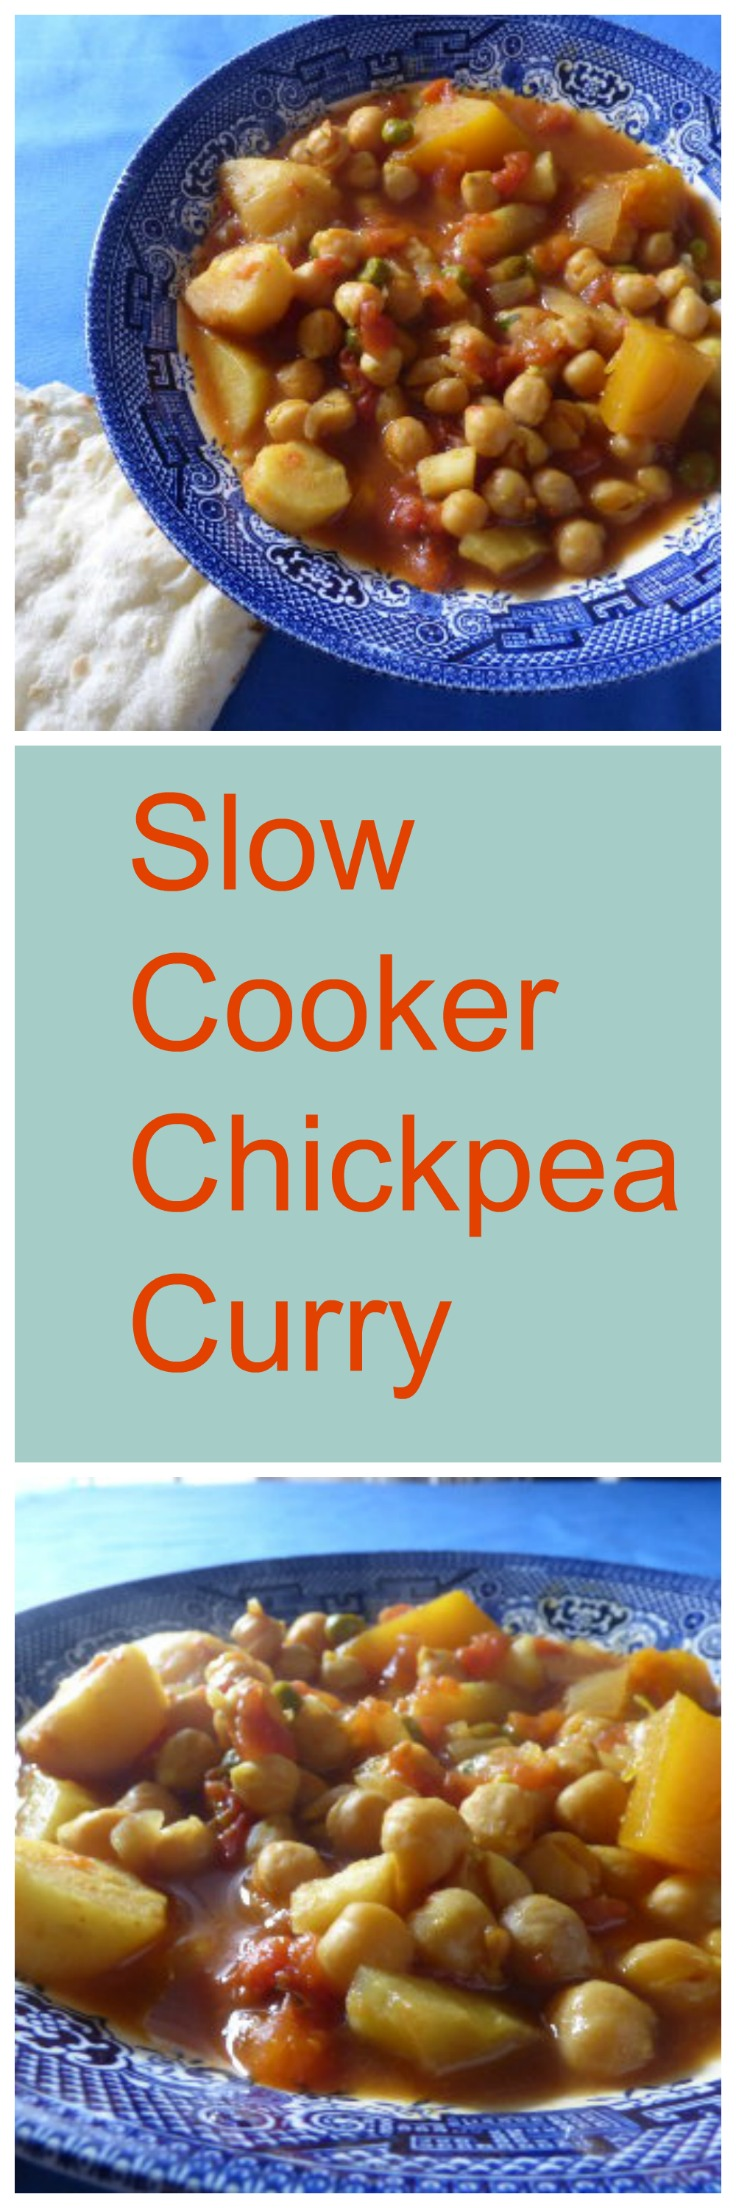 Slow cooker chickpea curry long